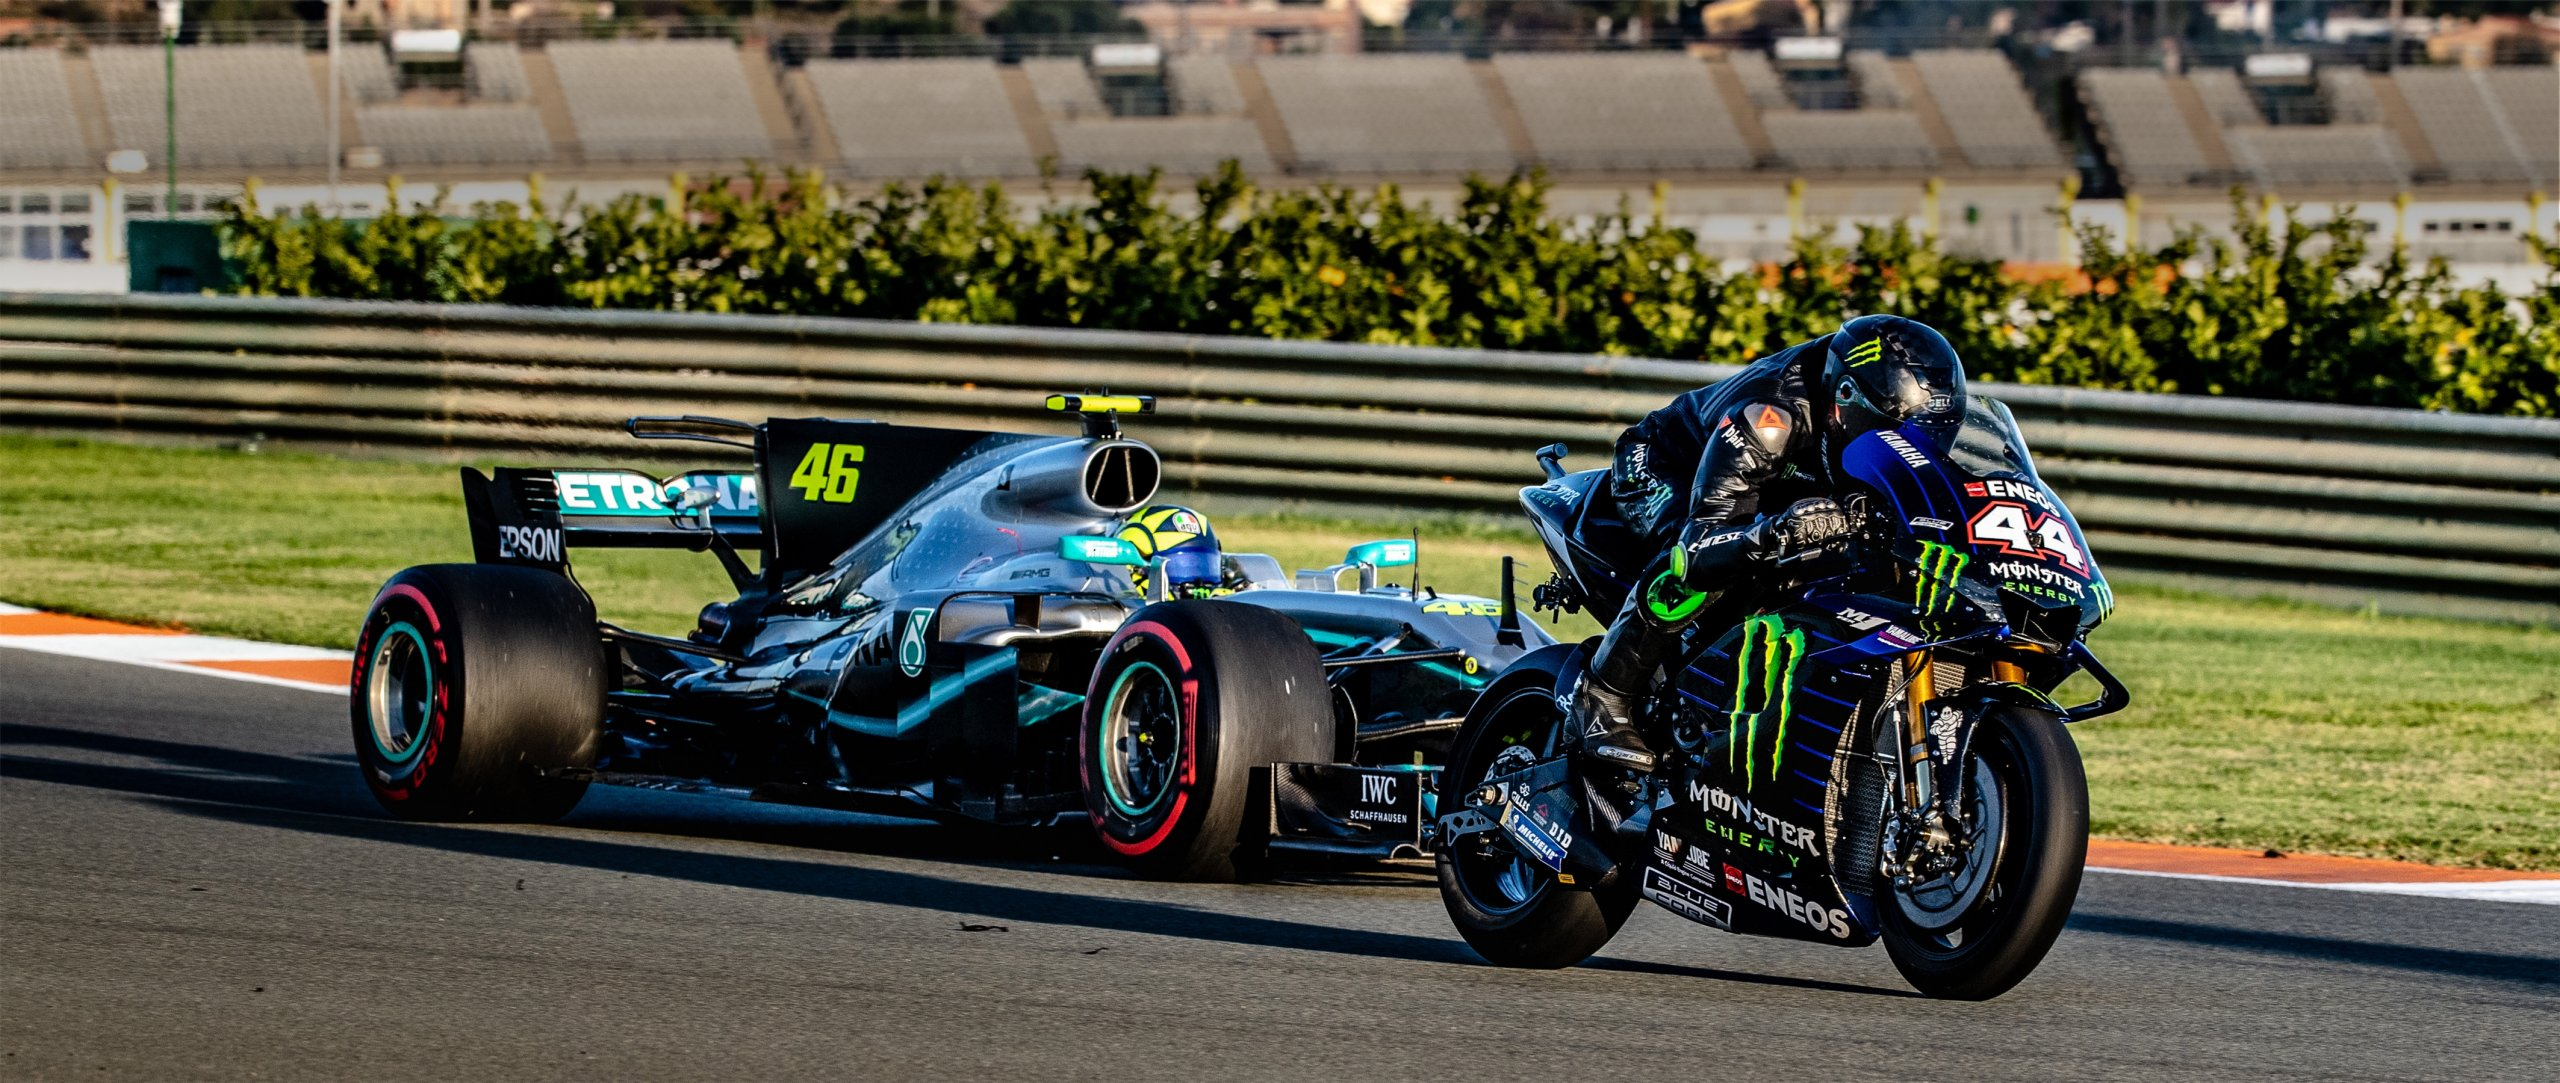 Valentino Rossi And Lewis Hamilton Take On The Ultimate Swap